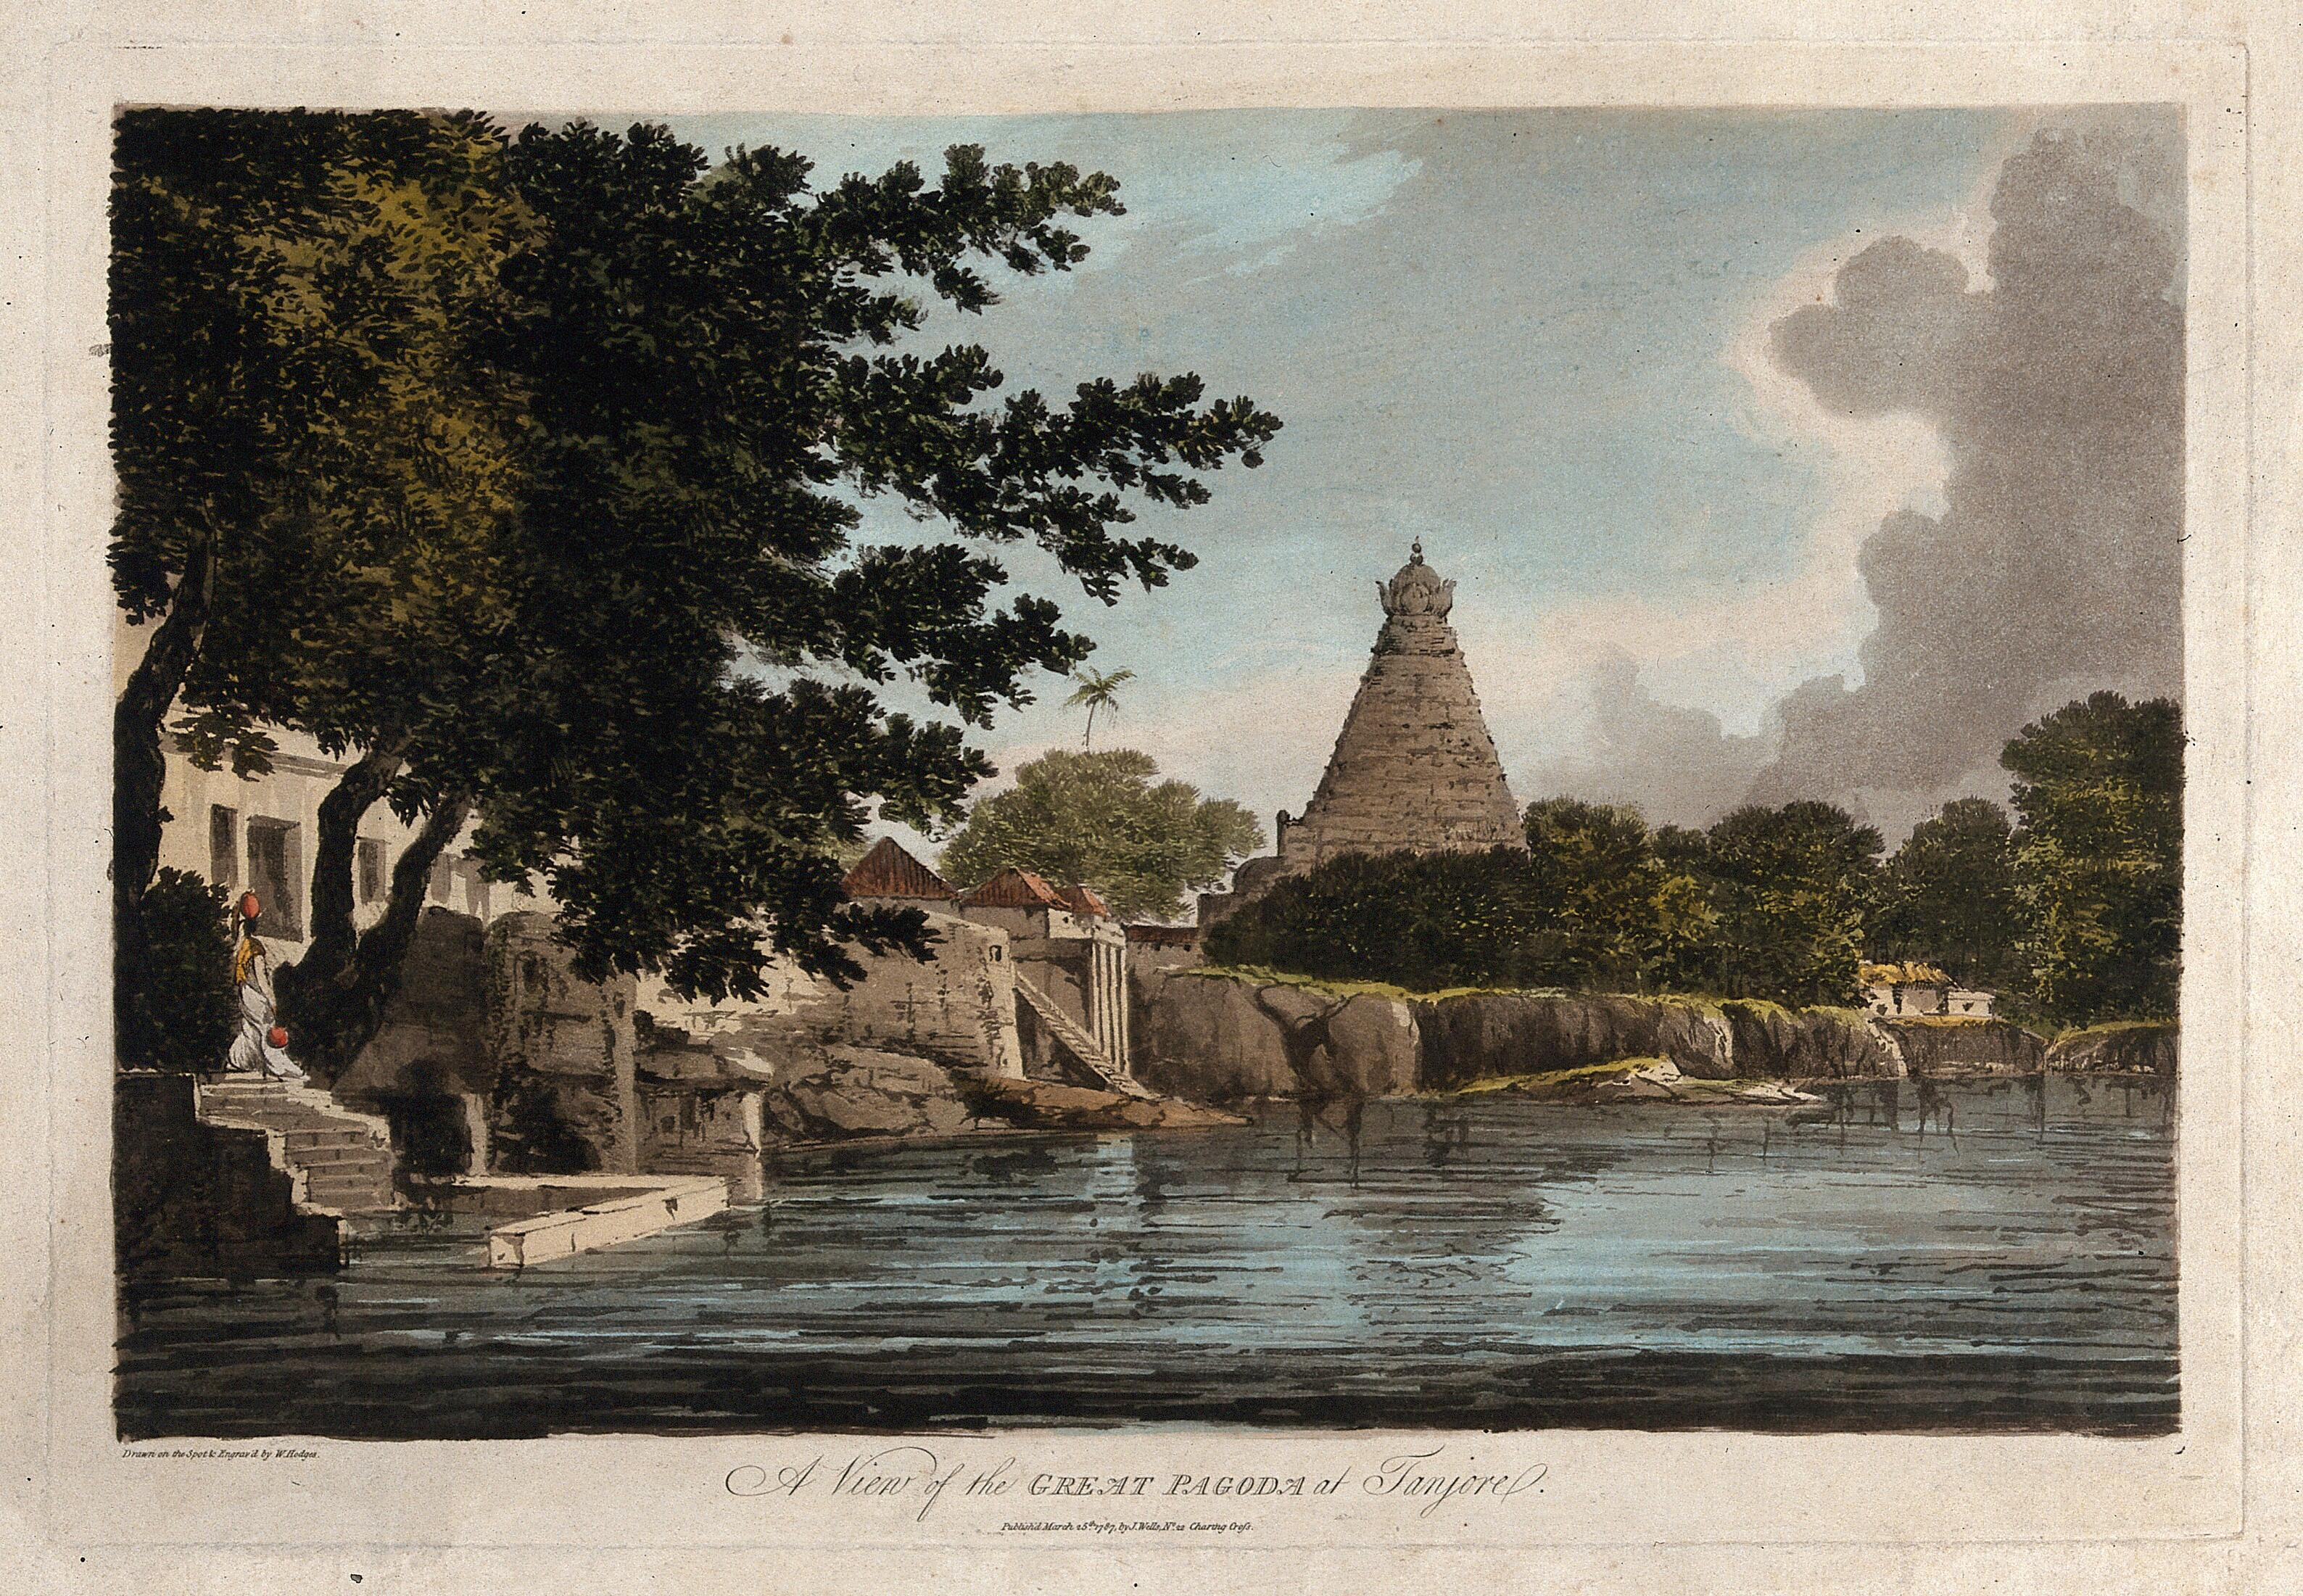 Pagoda at Thanjavur, Tamil Nadu  Coloured etching by William